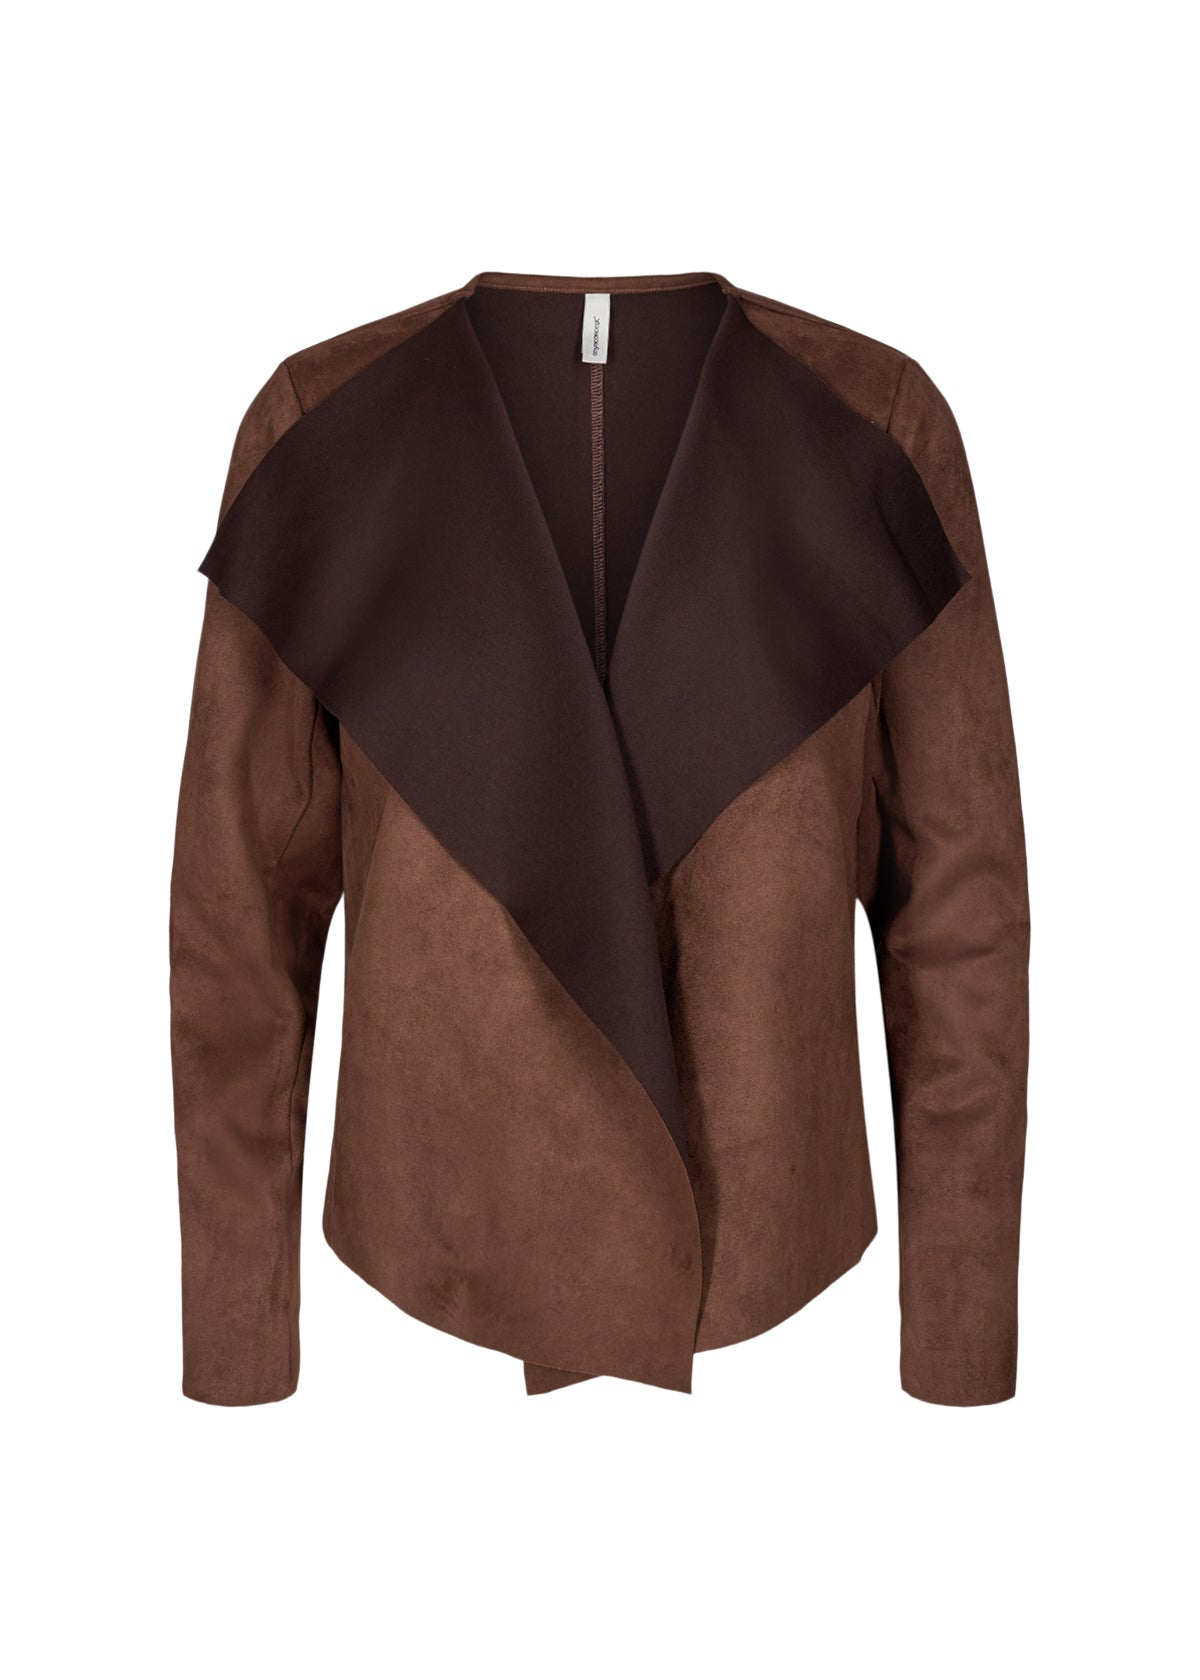 SOYA CONCEPT - CARDIGAN - 8787 BROWN